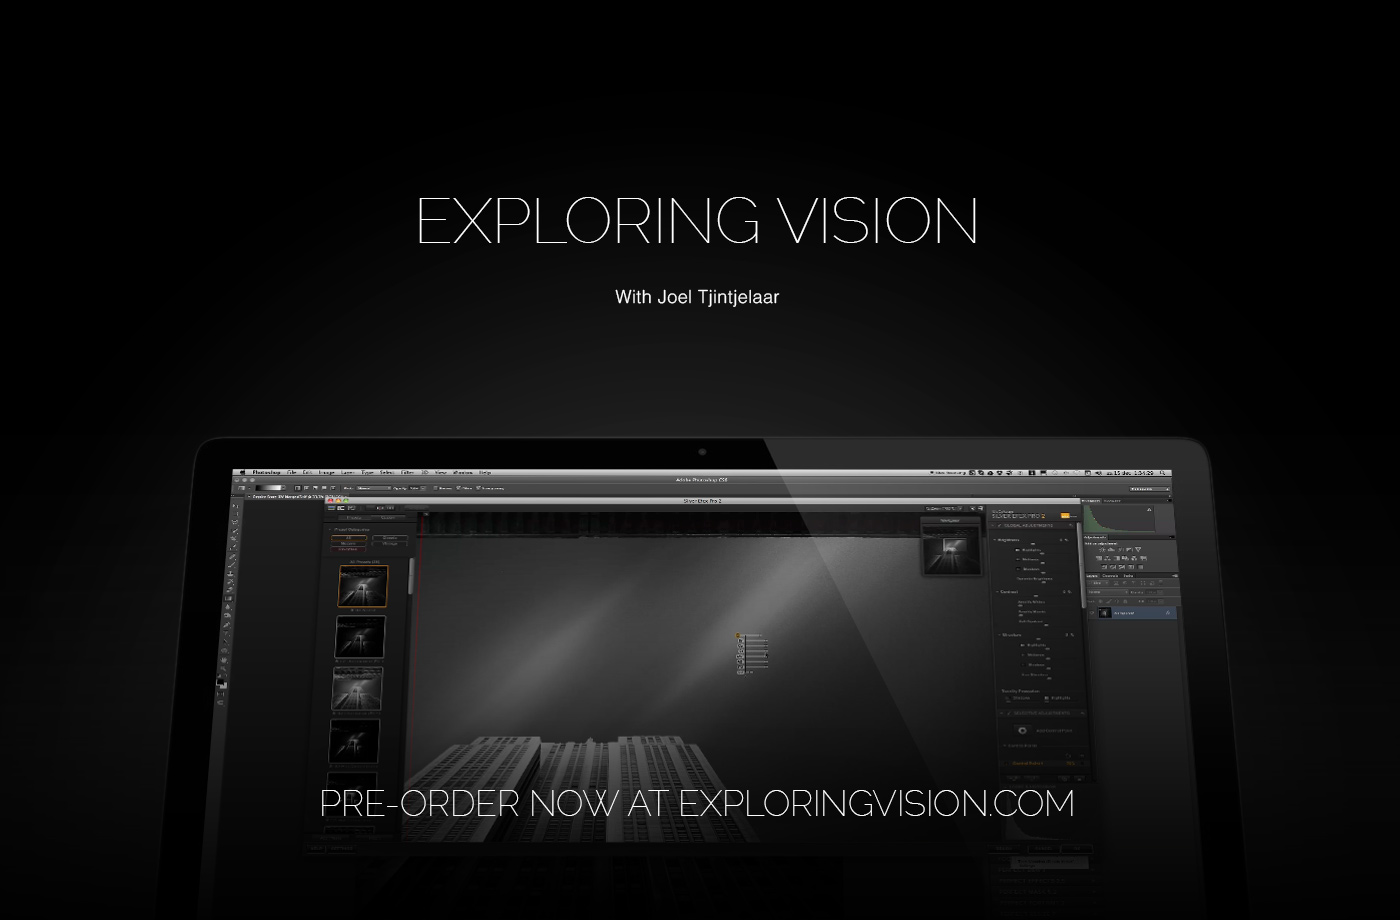 New Video Tutorial Exploring Vision – Pre-order Started